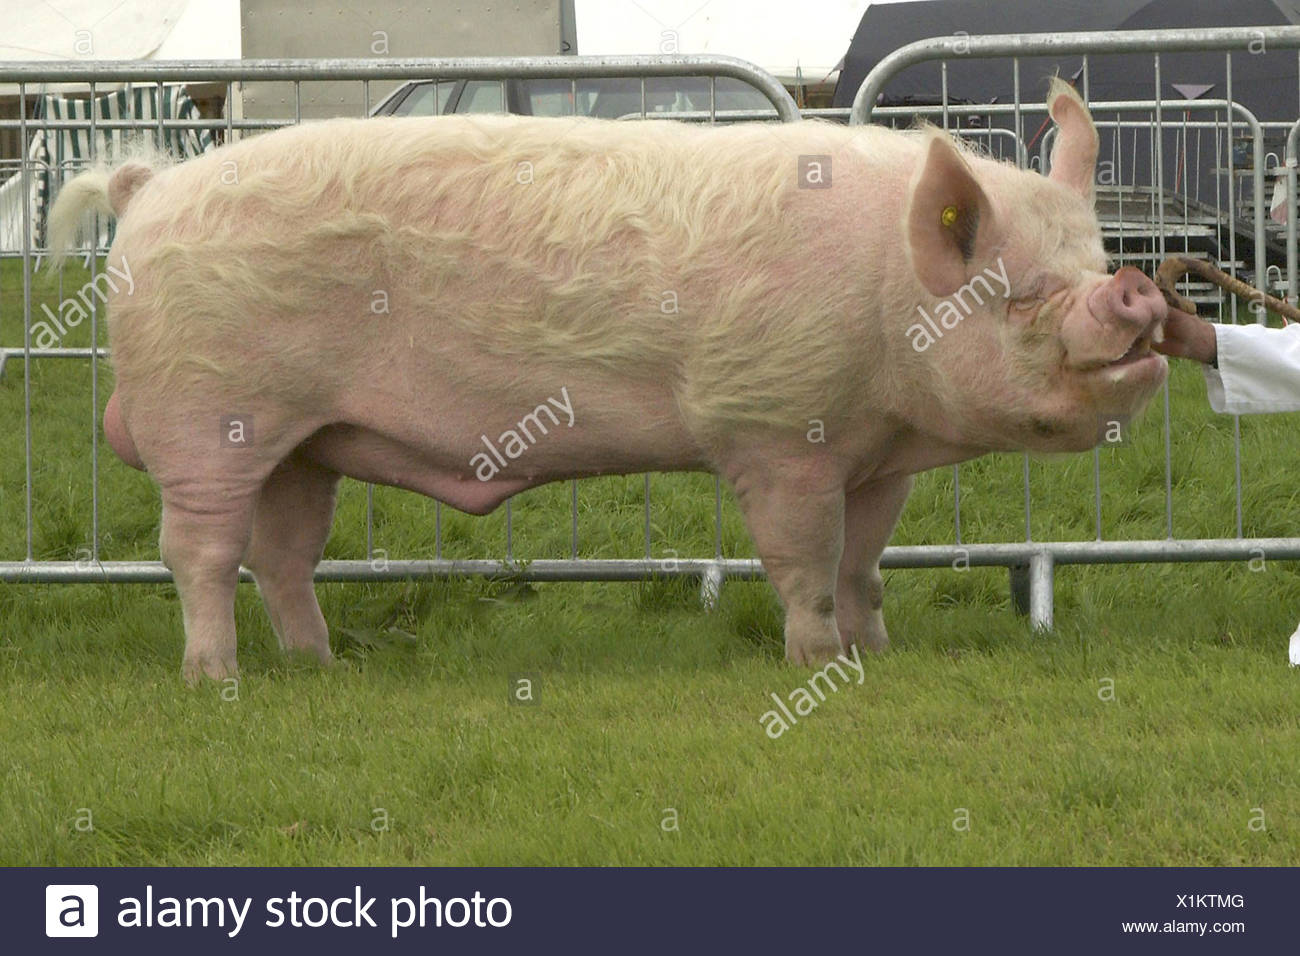 Domestic Pig Middle White boar eighteen-month old - Stock Image